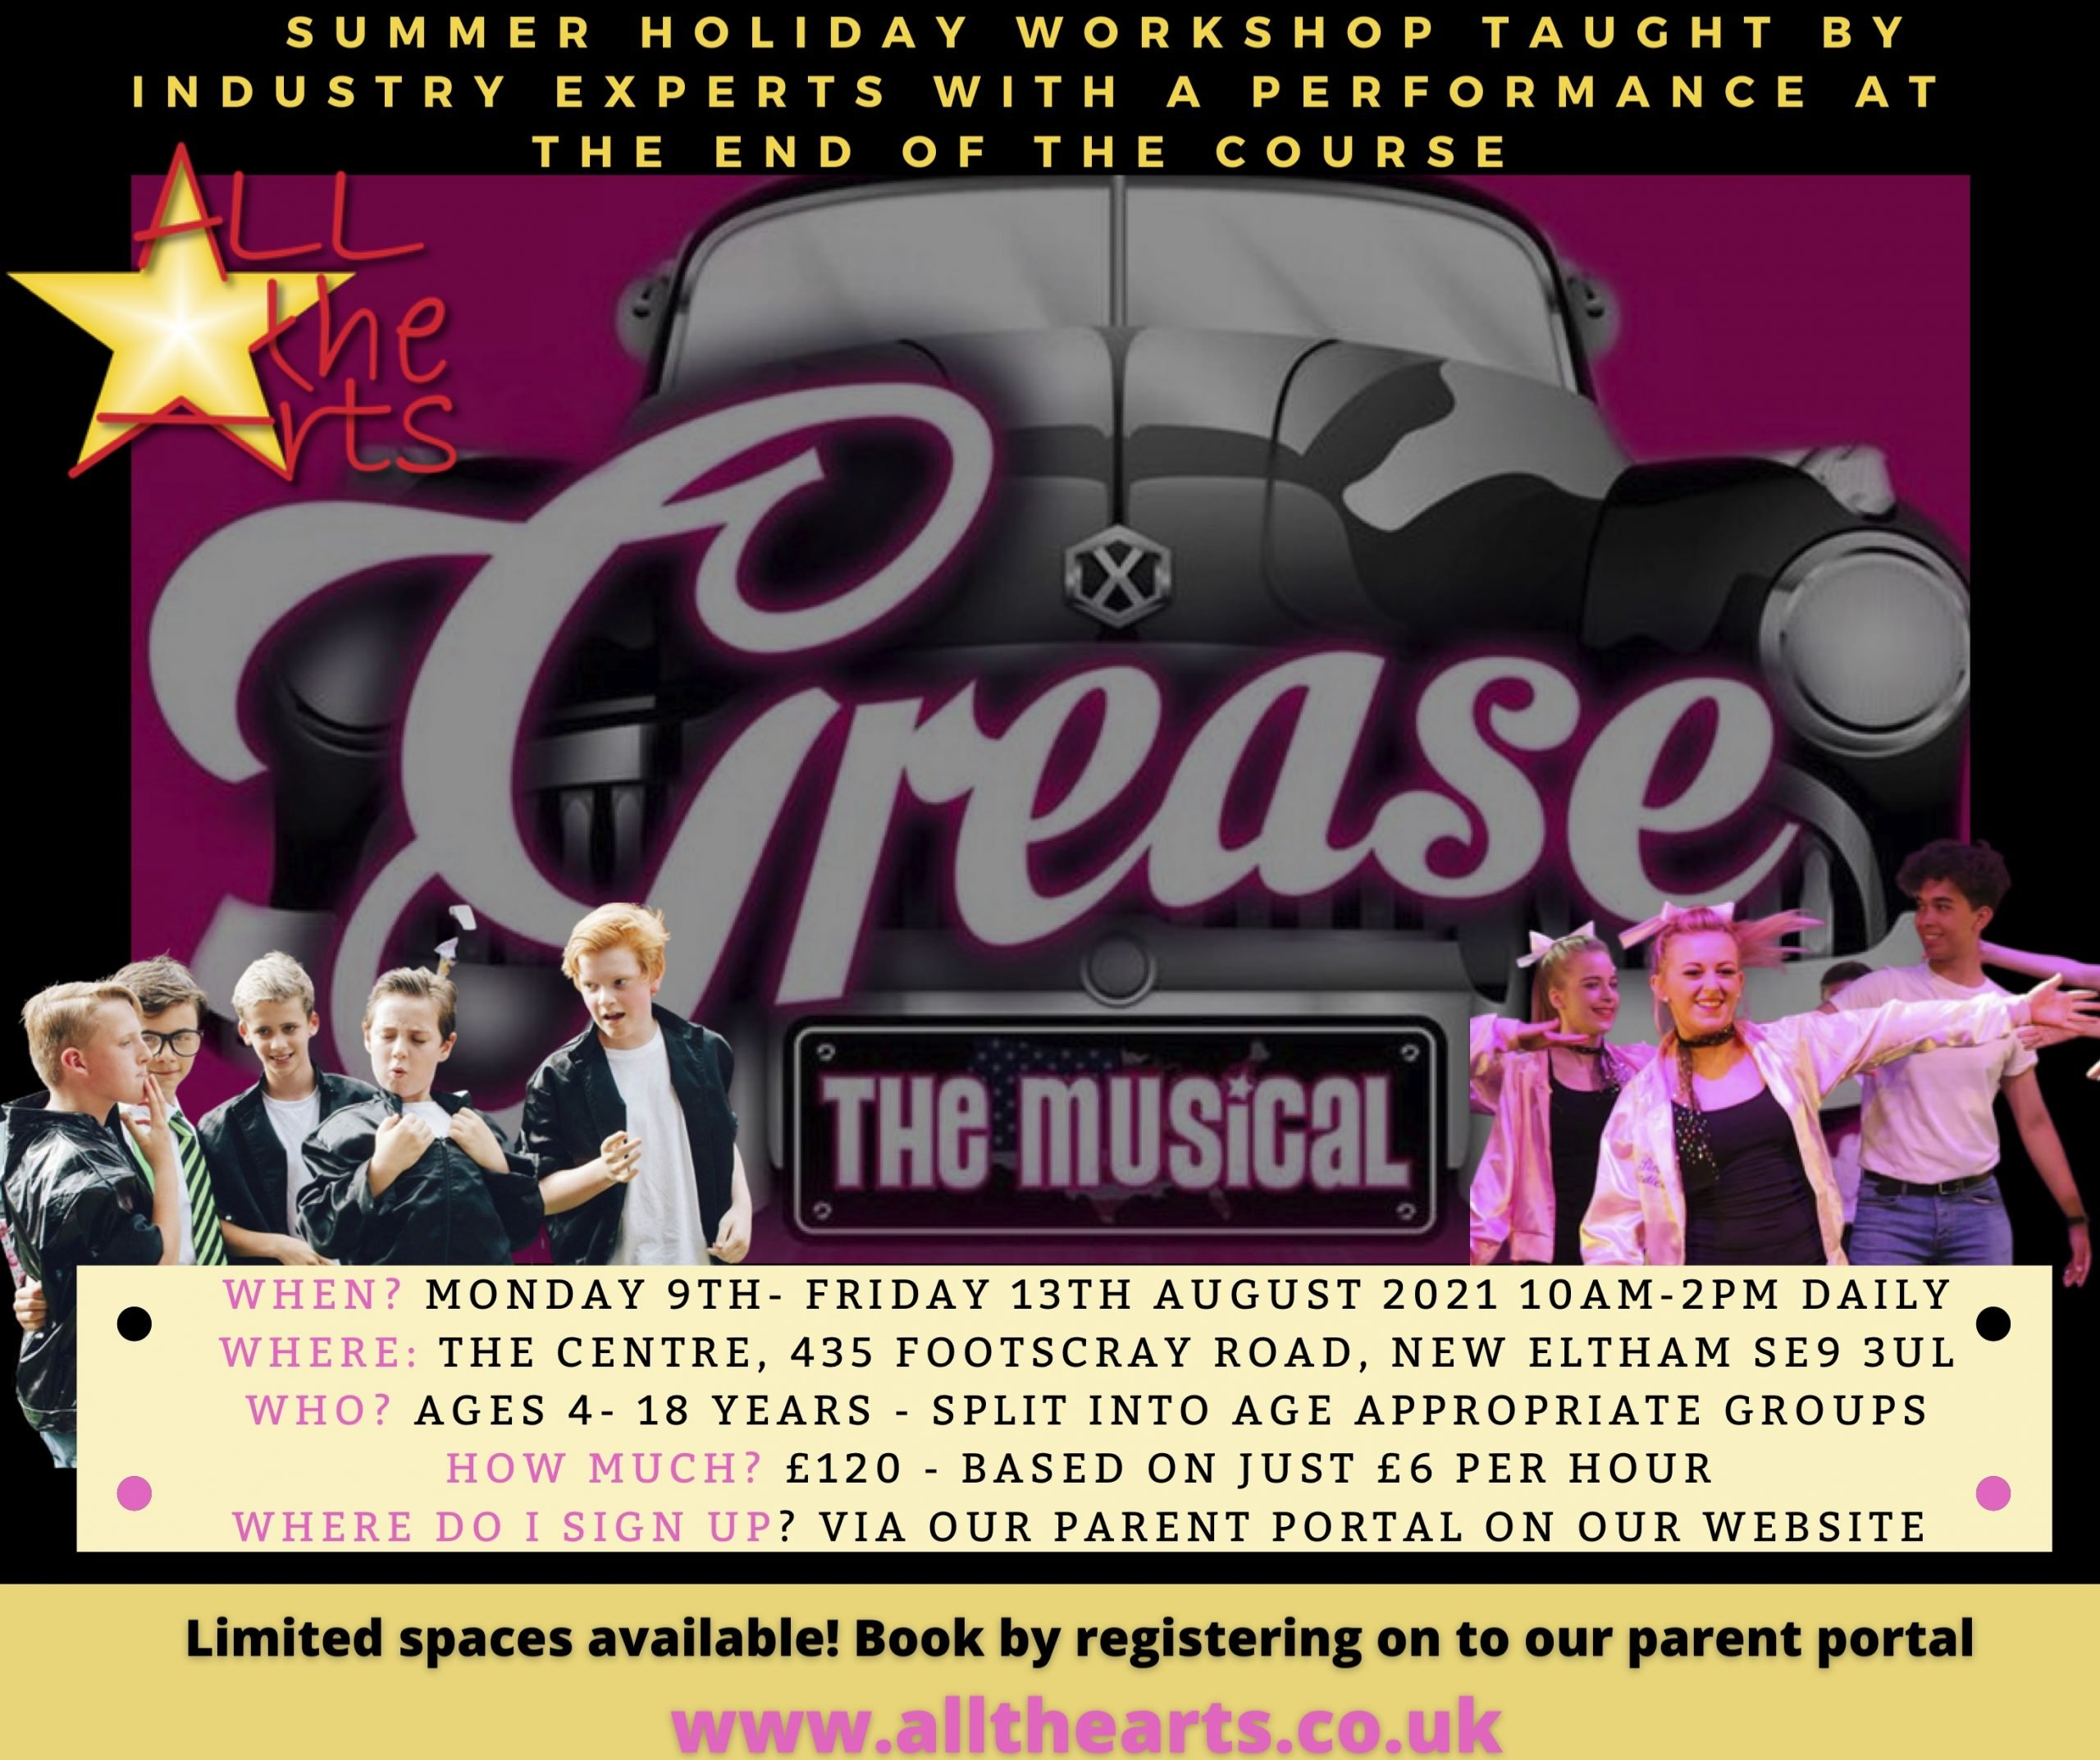 Grease course